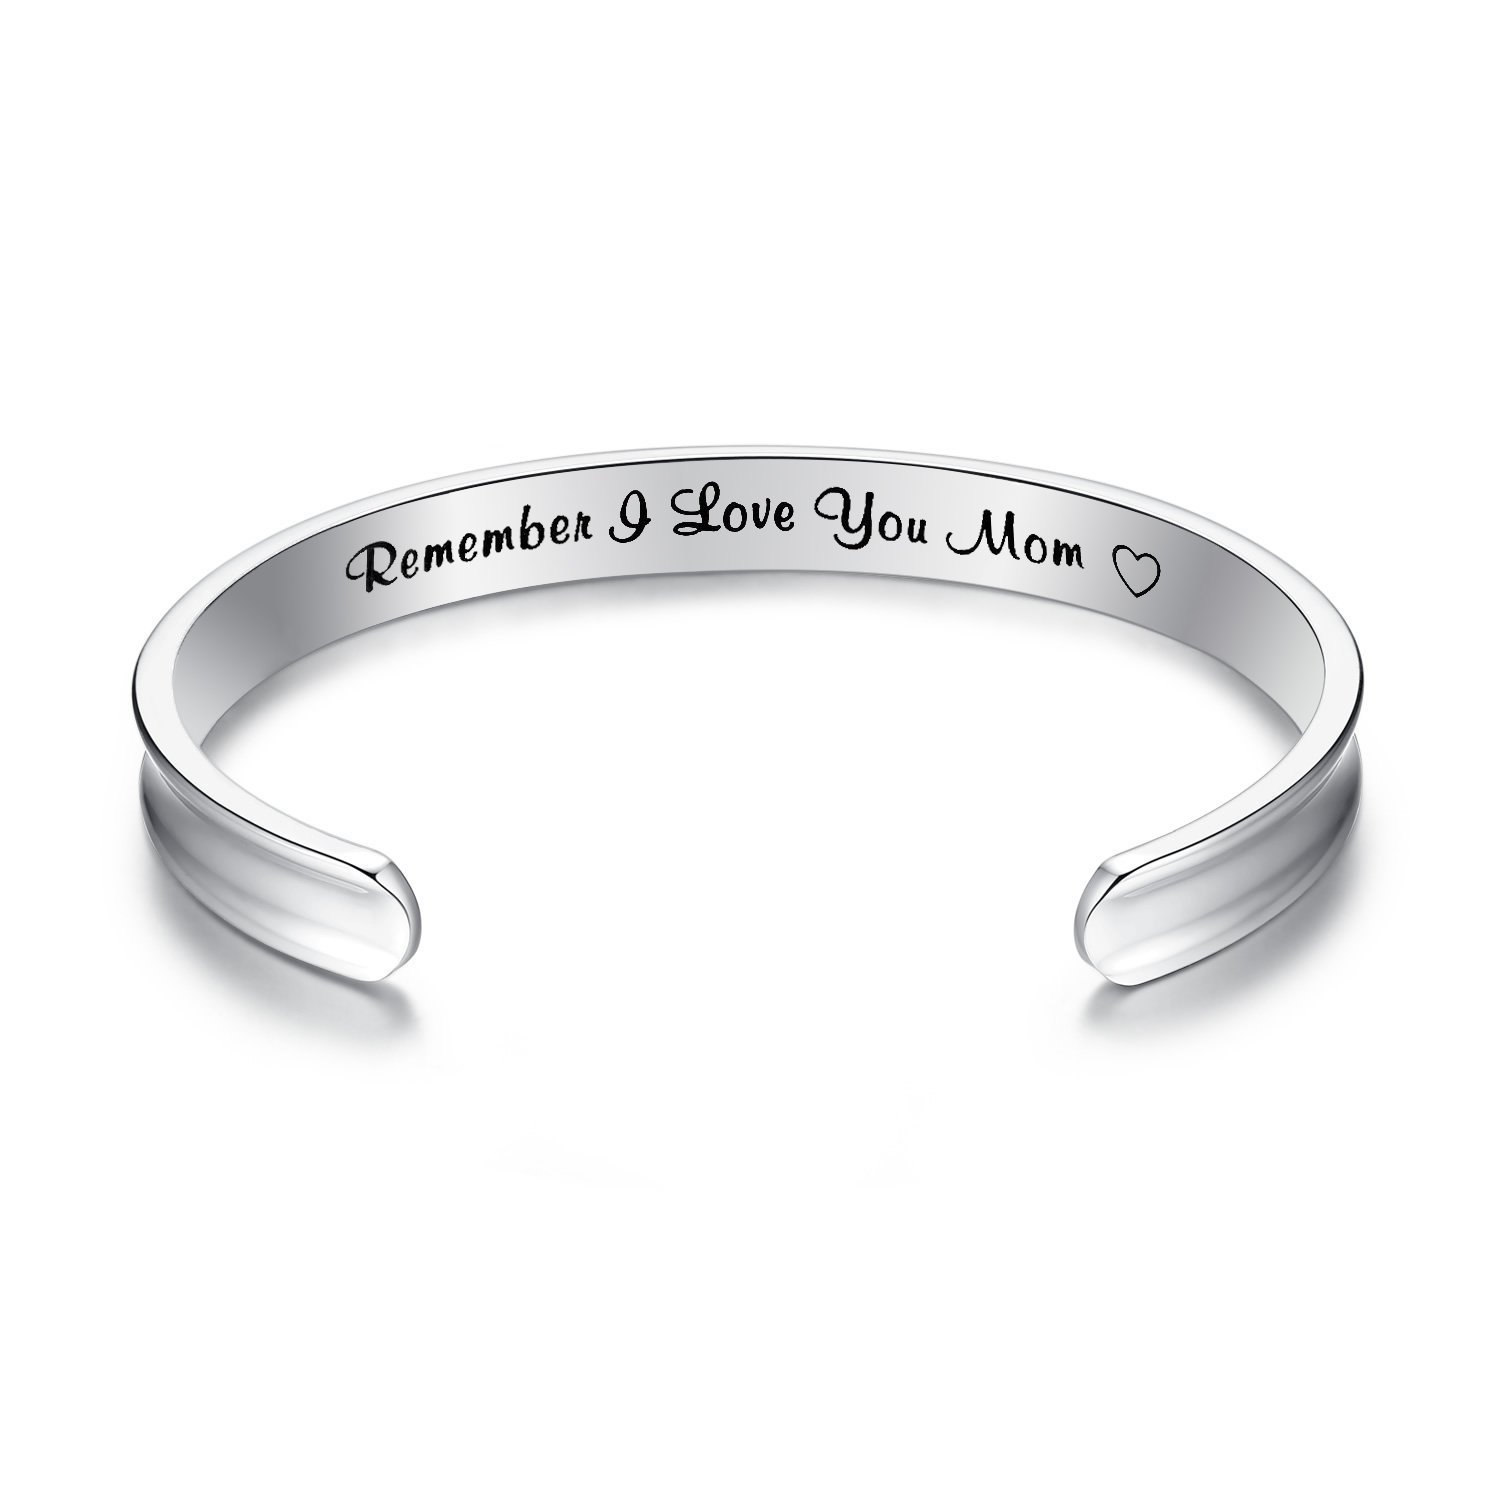 Yoomarket Remember I Love You Mom Cuff Bangle Bracelets Rose gold Silver Bracelet For from Mom and Daughter Birthdays (Silver-Grooved)